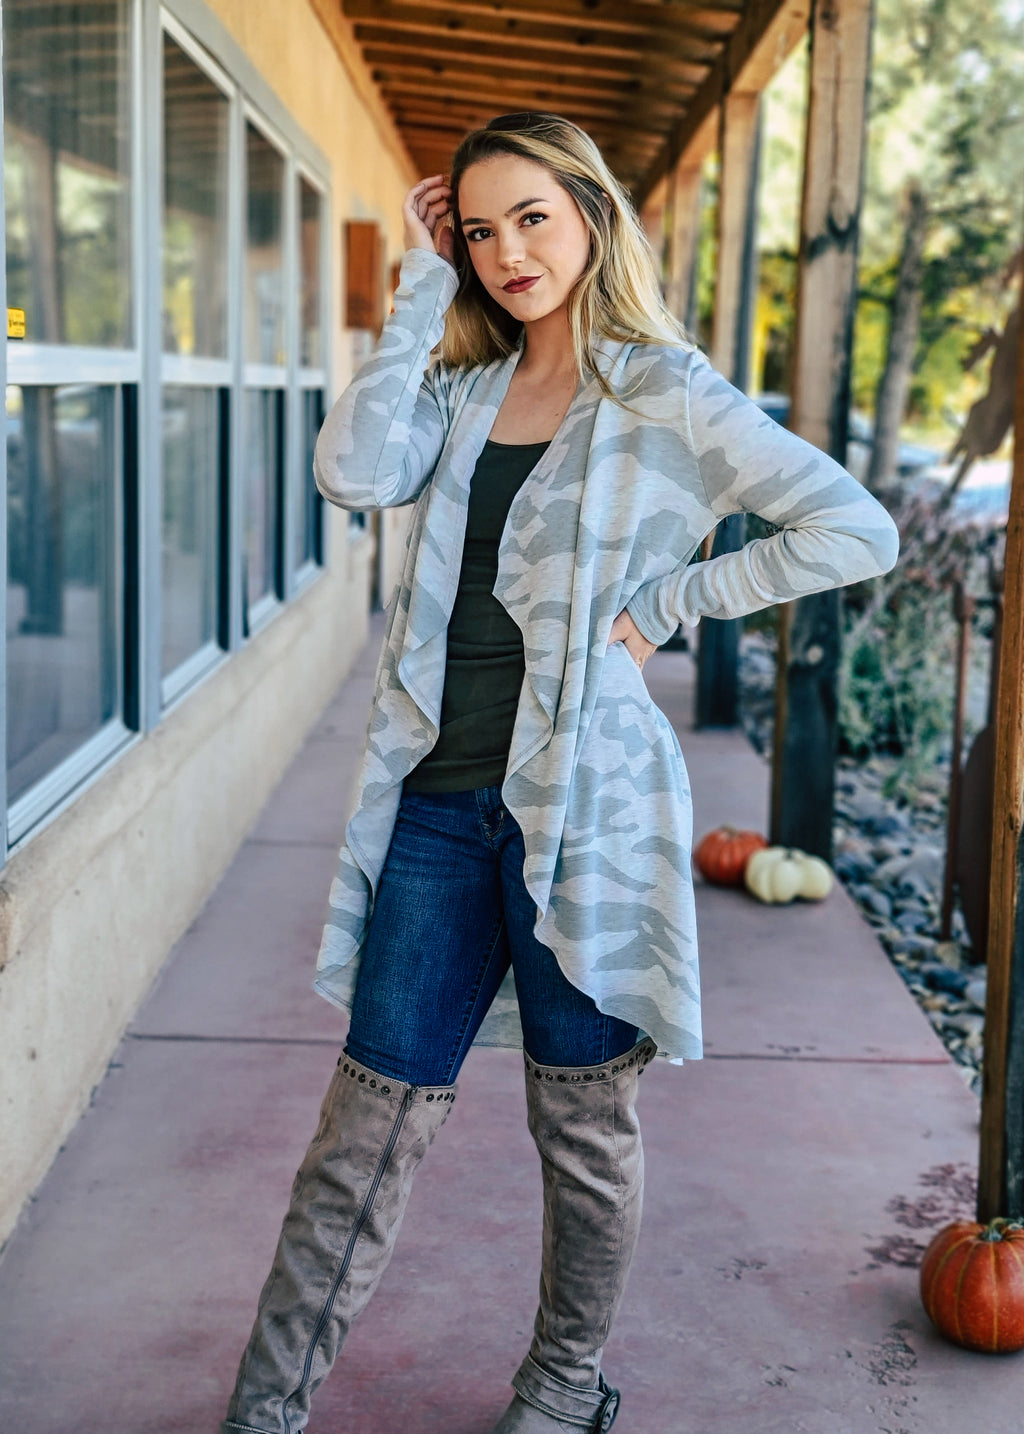 Light Grey Camo Drape Long Sleeve Cardigan on Blonde Model Wearing Denim Jeans and Taupe Knee High Boots Taken Outside in Natural Light